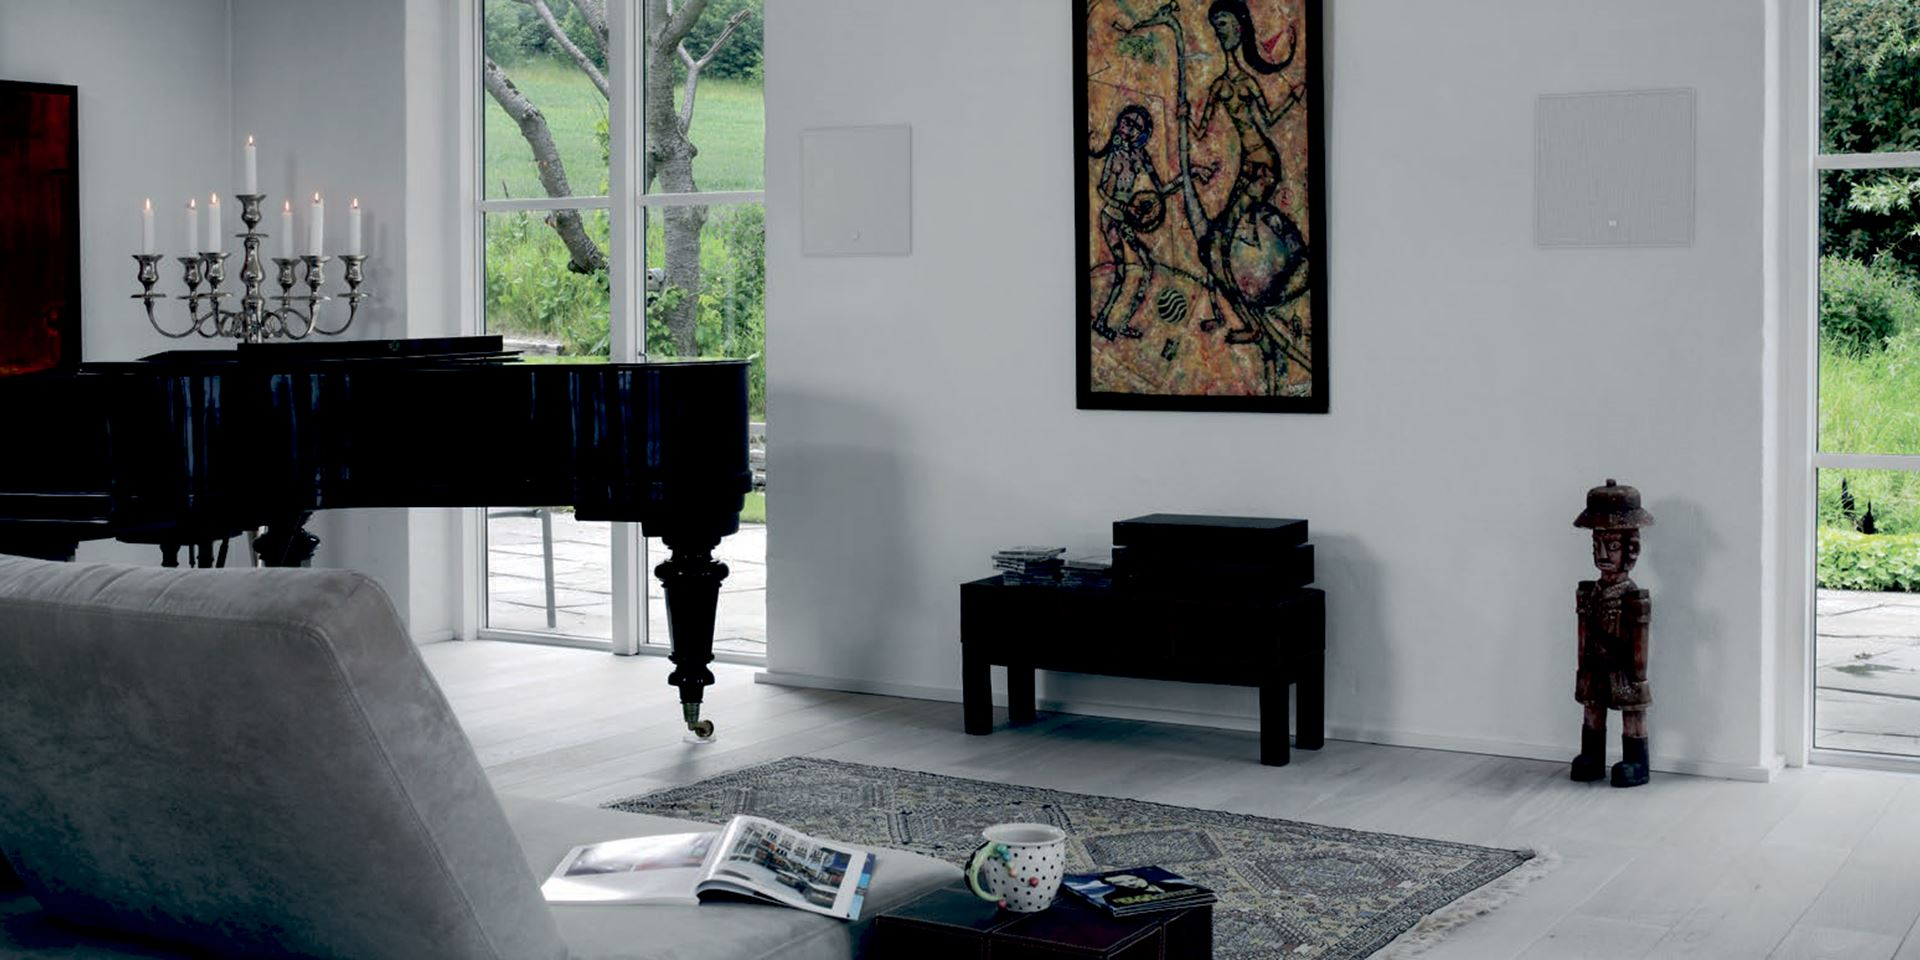 Two white grille speakers in wall in a modern living space next to a black piano